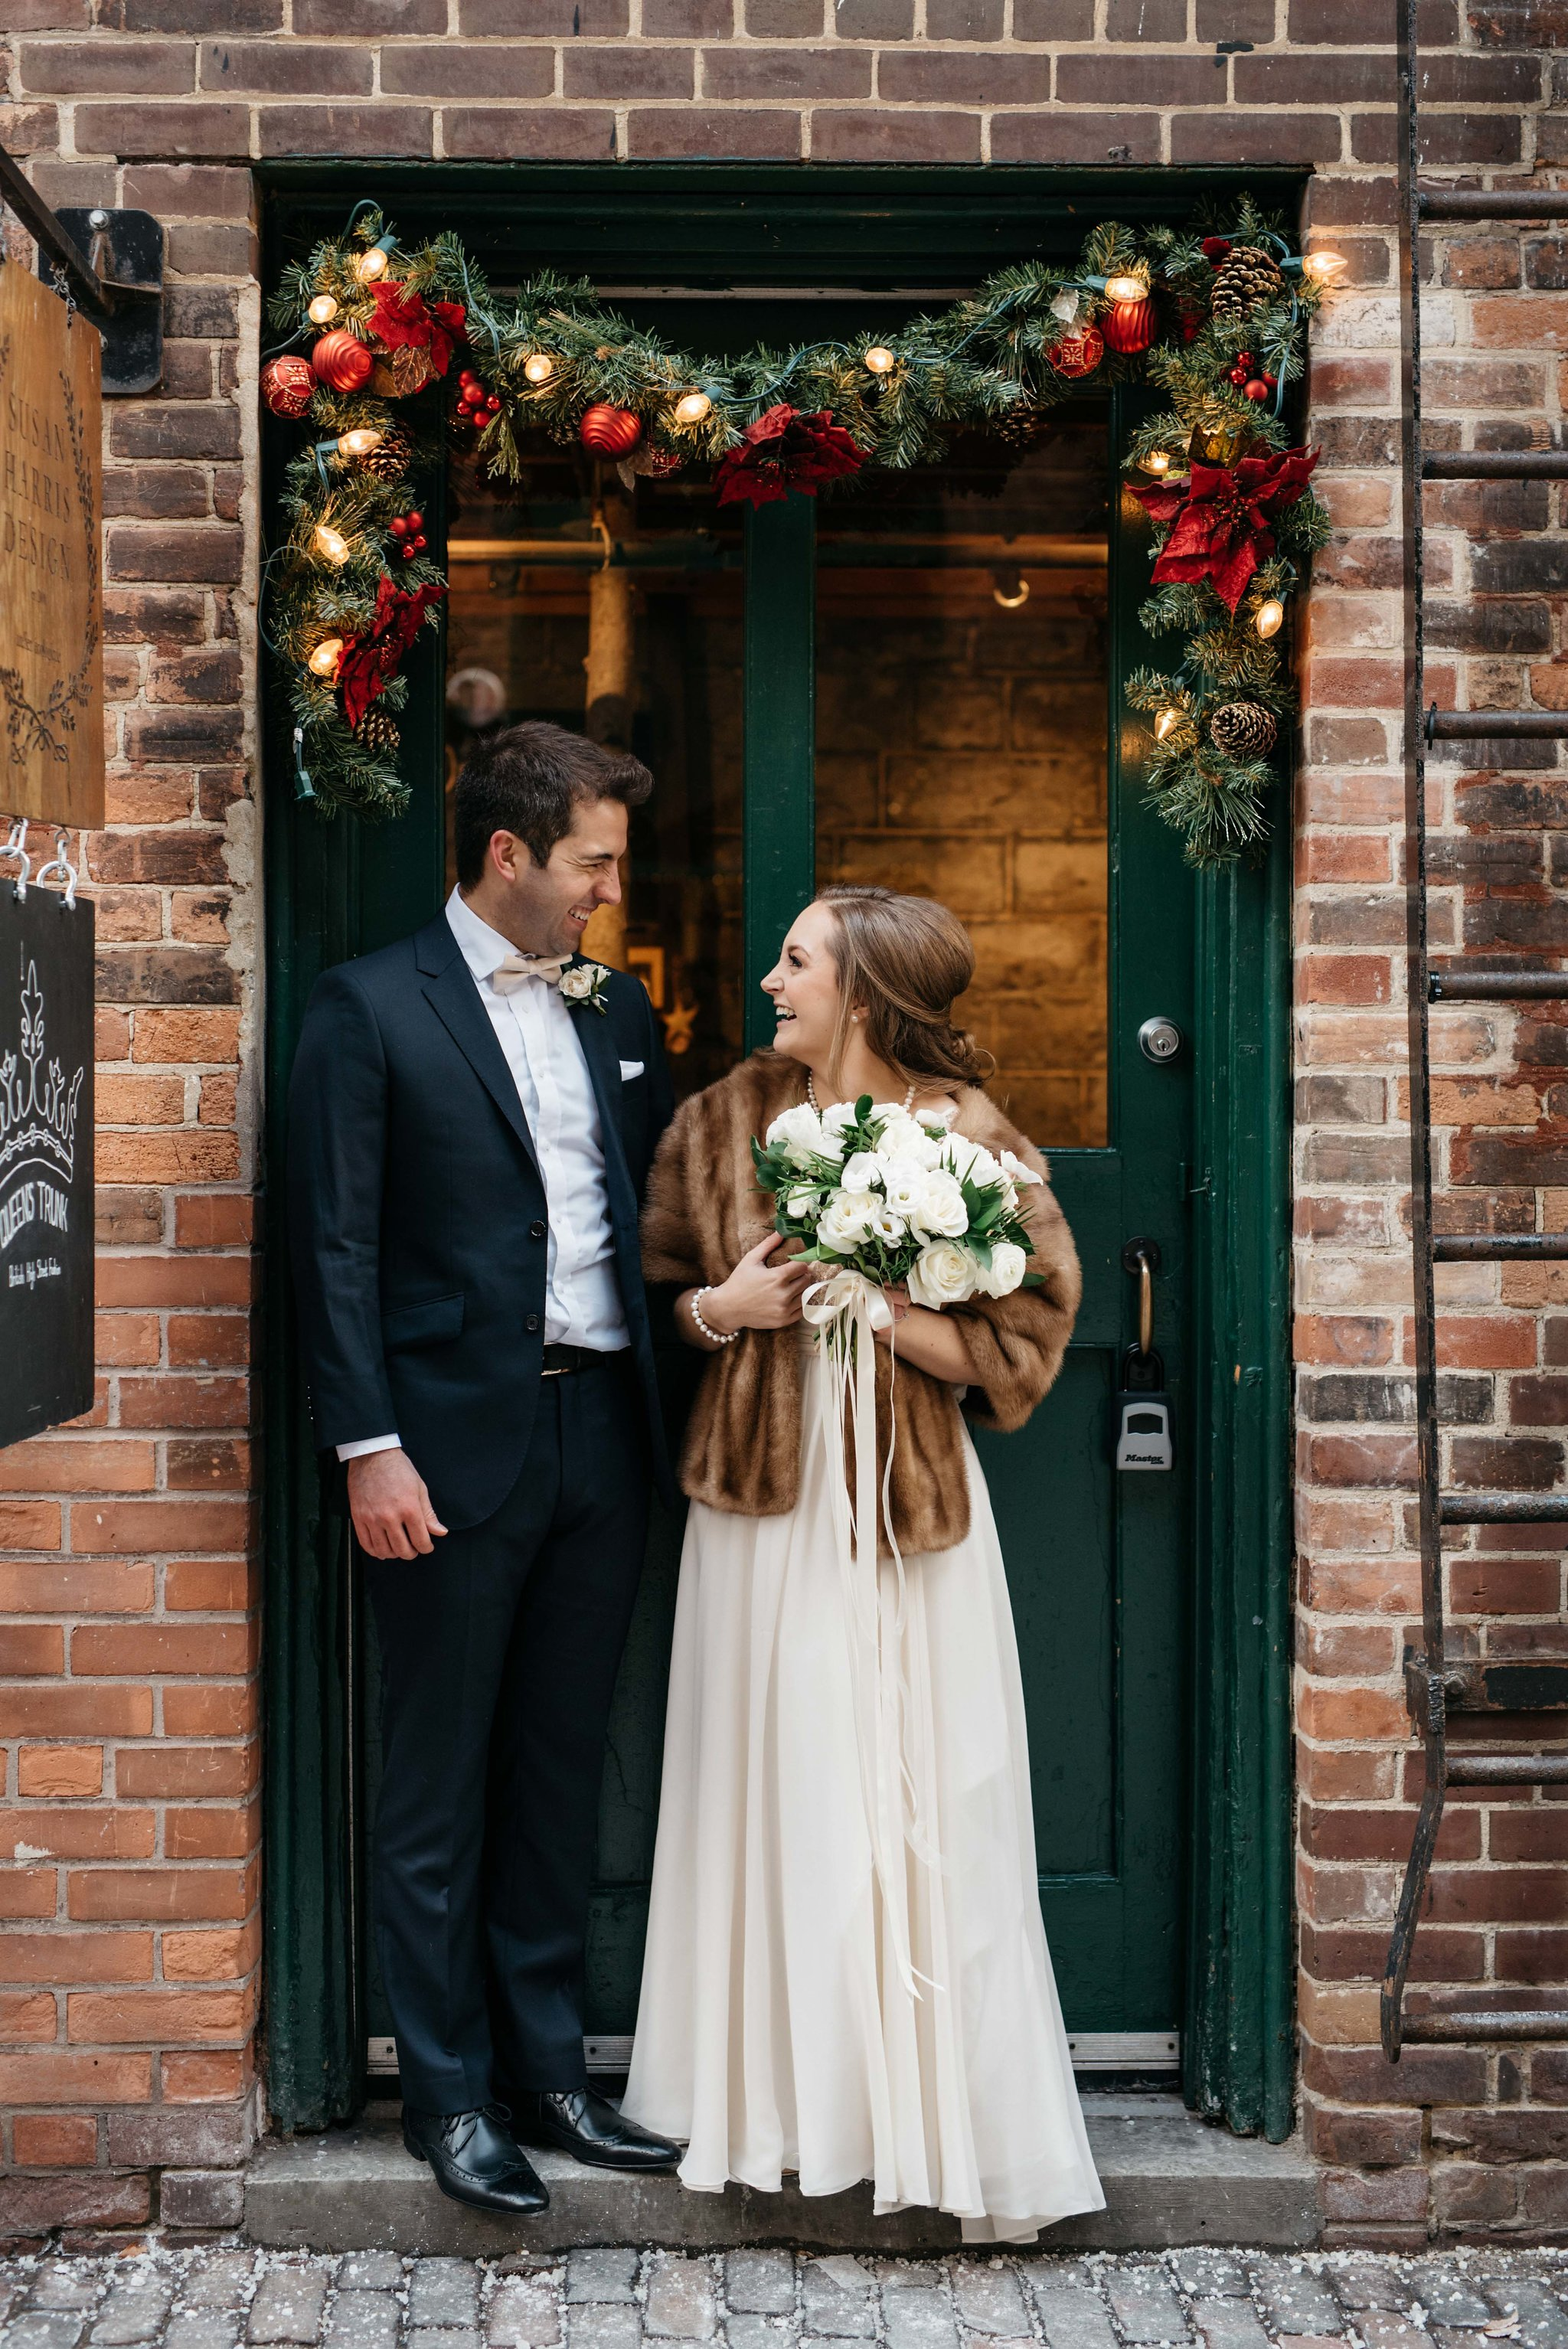 Winter wedding photos - Olive Photography Toronto